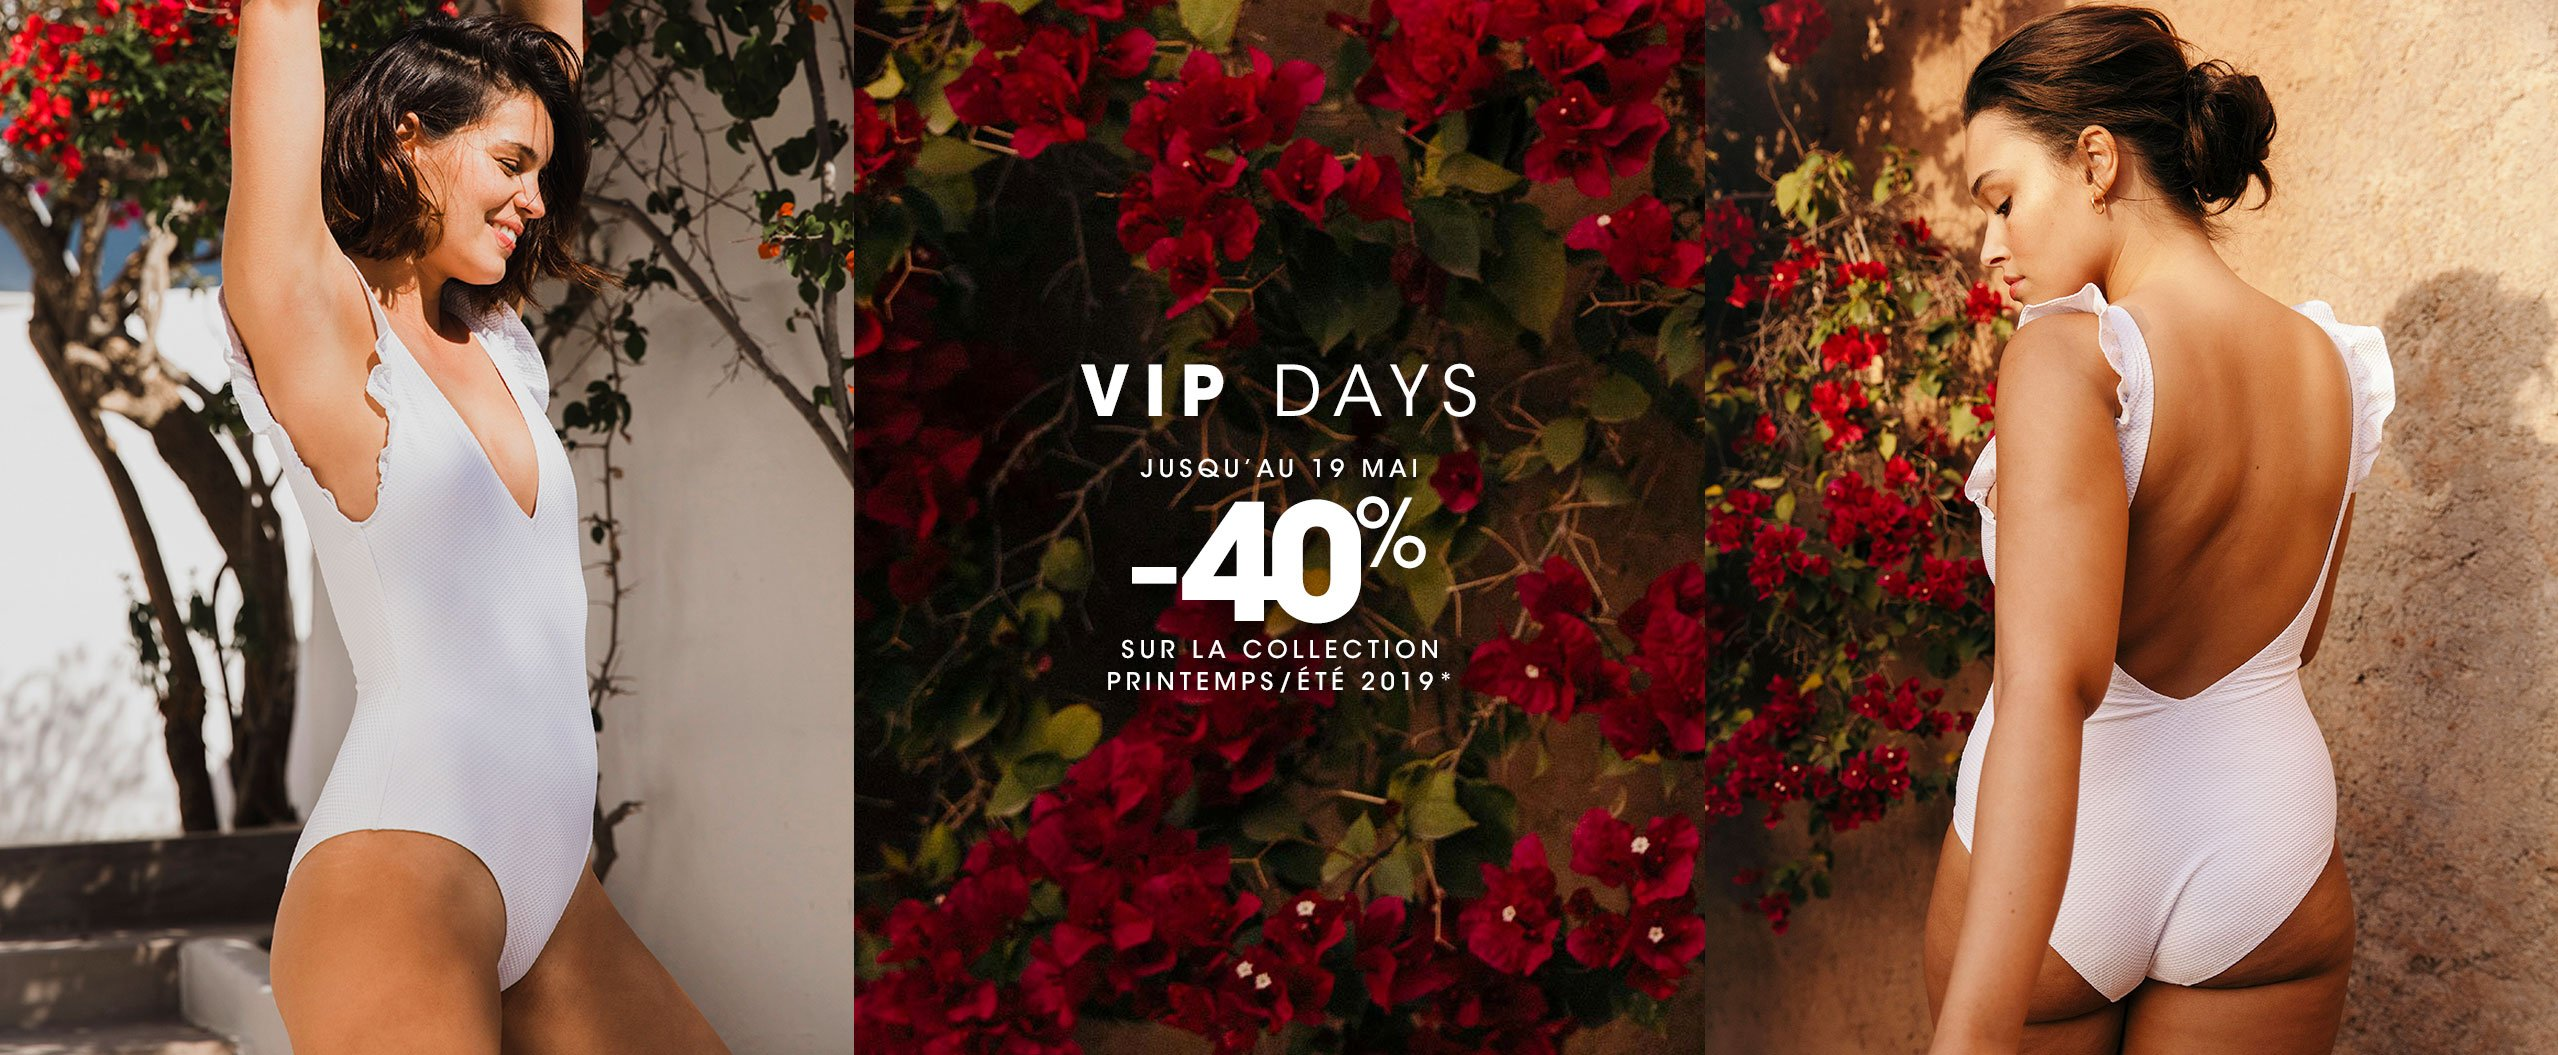 VIP DAYS : -40% sur la collection printemps/été 2019